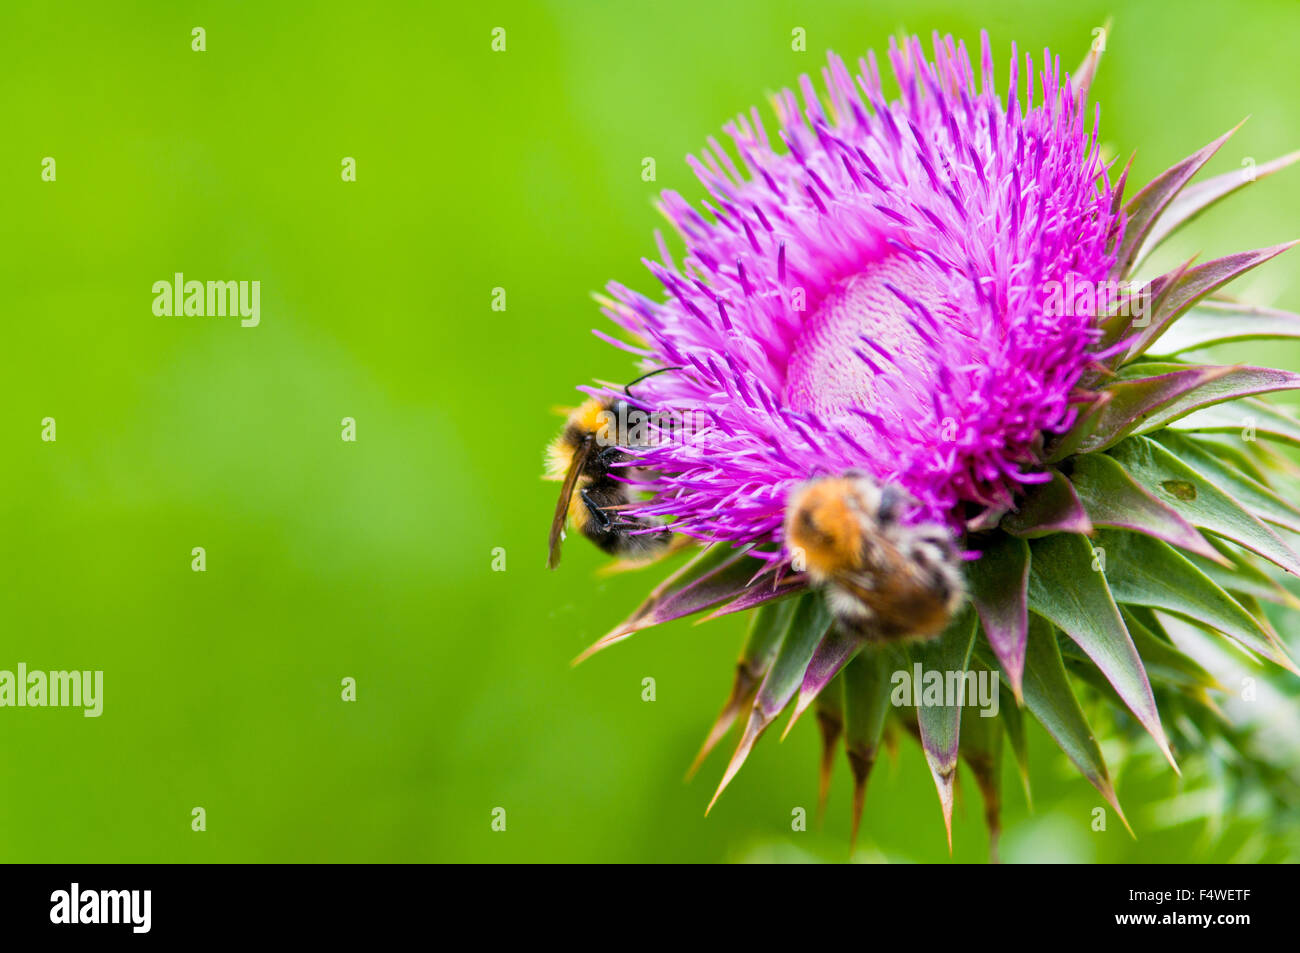 animal background beautiful beauty bee biology blossom close-up closeup collecting color colorful field flora floral Stock Photo